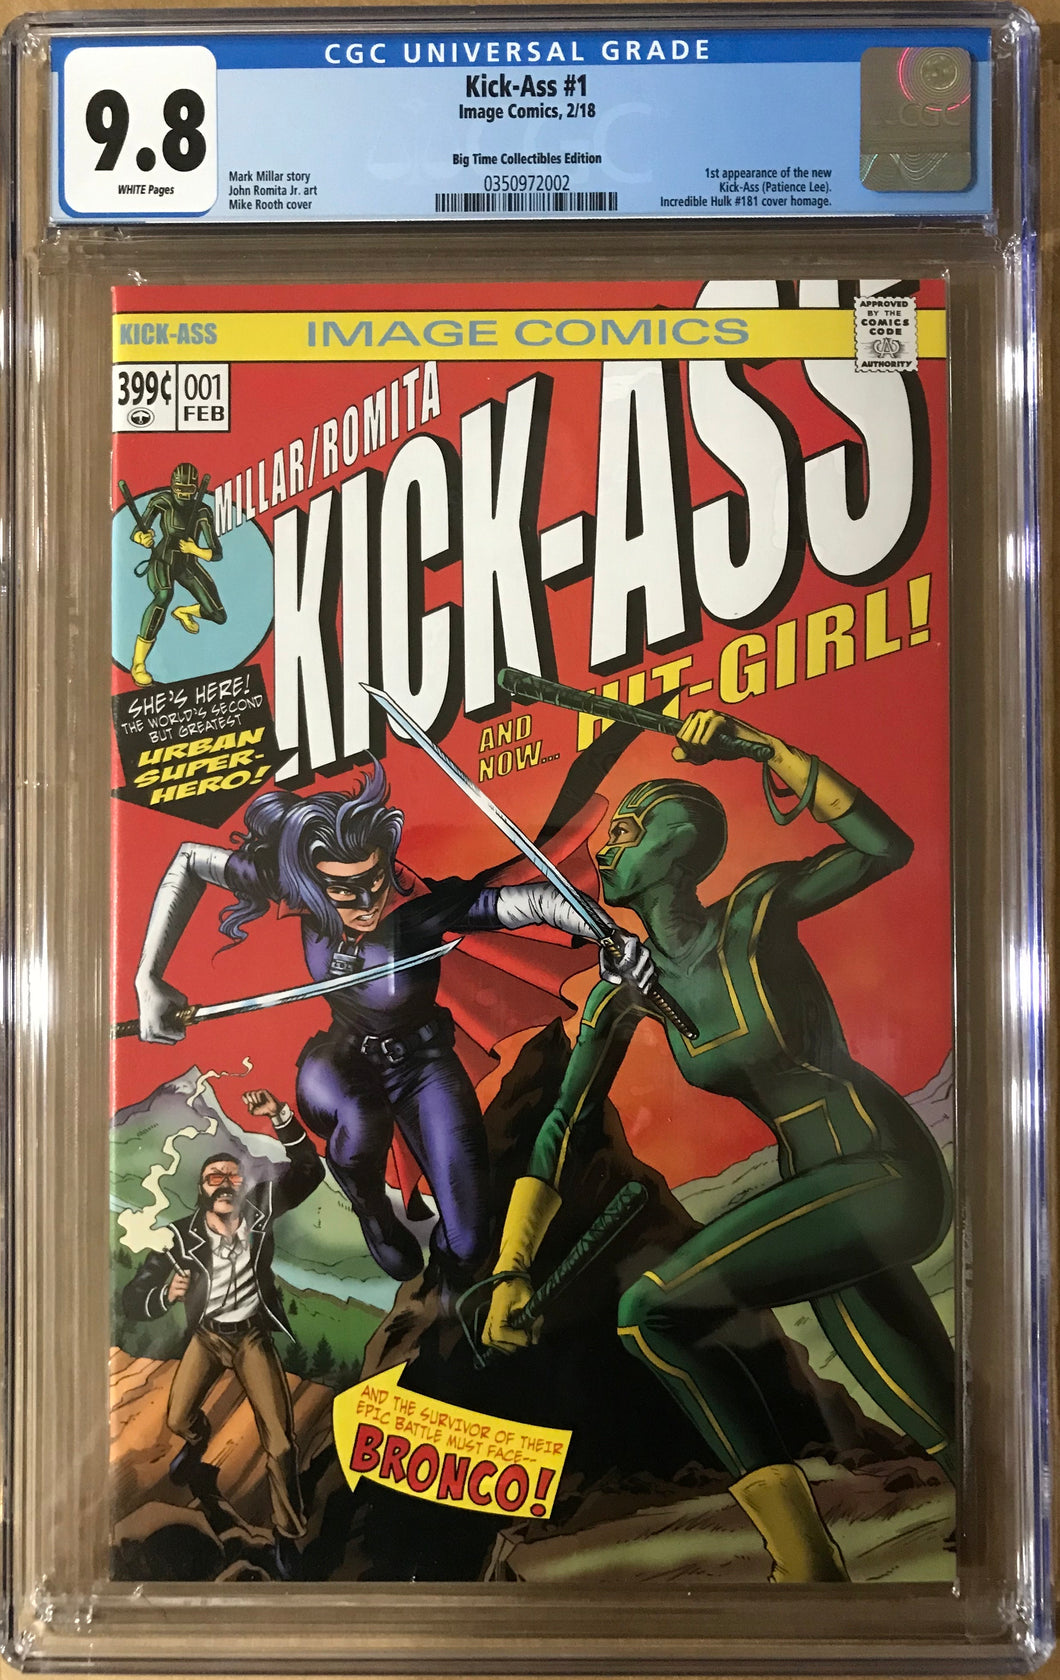 KICK-ASS #1 MIKE ROOTH EXCLUSIVE COVERS CGC 9.8 BLUE LABEL HULK#181 HOMAGE